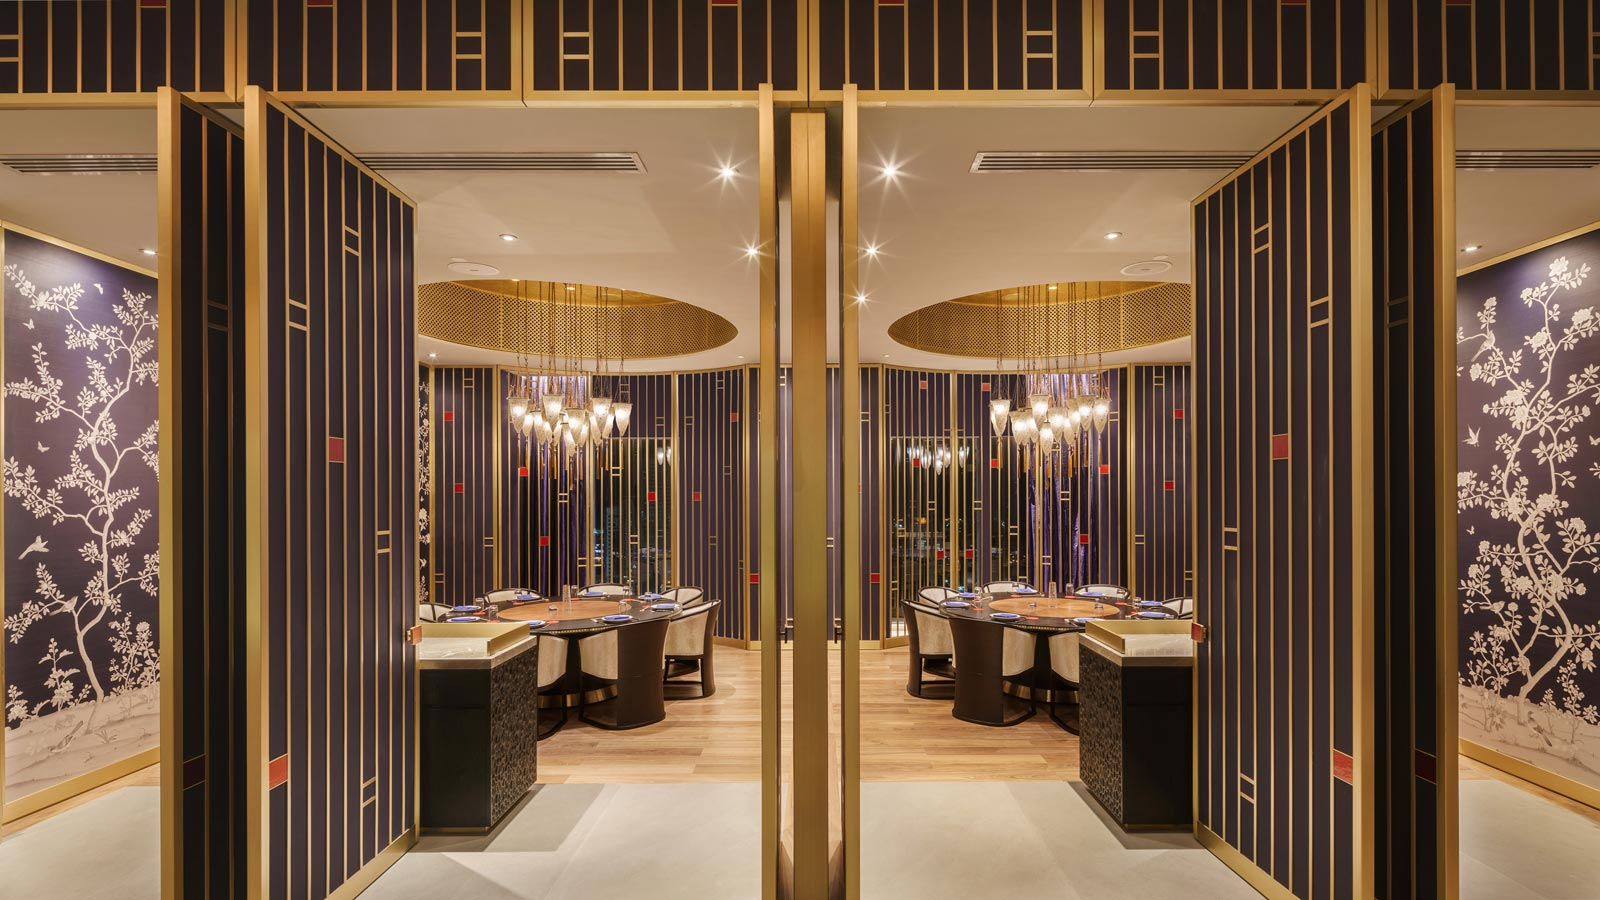 Four Seasons Hotel Kuwait with glass Cesendello pendant lamps